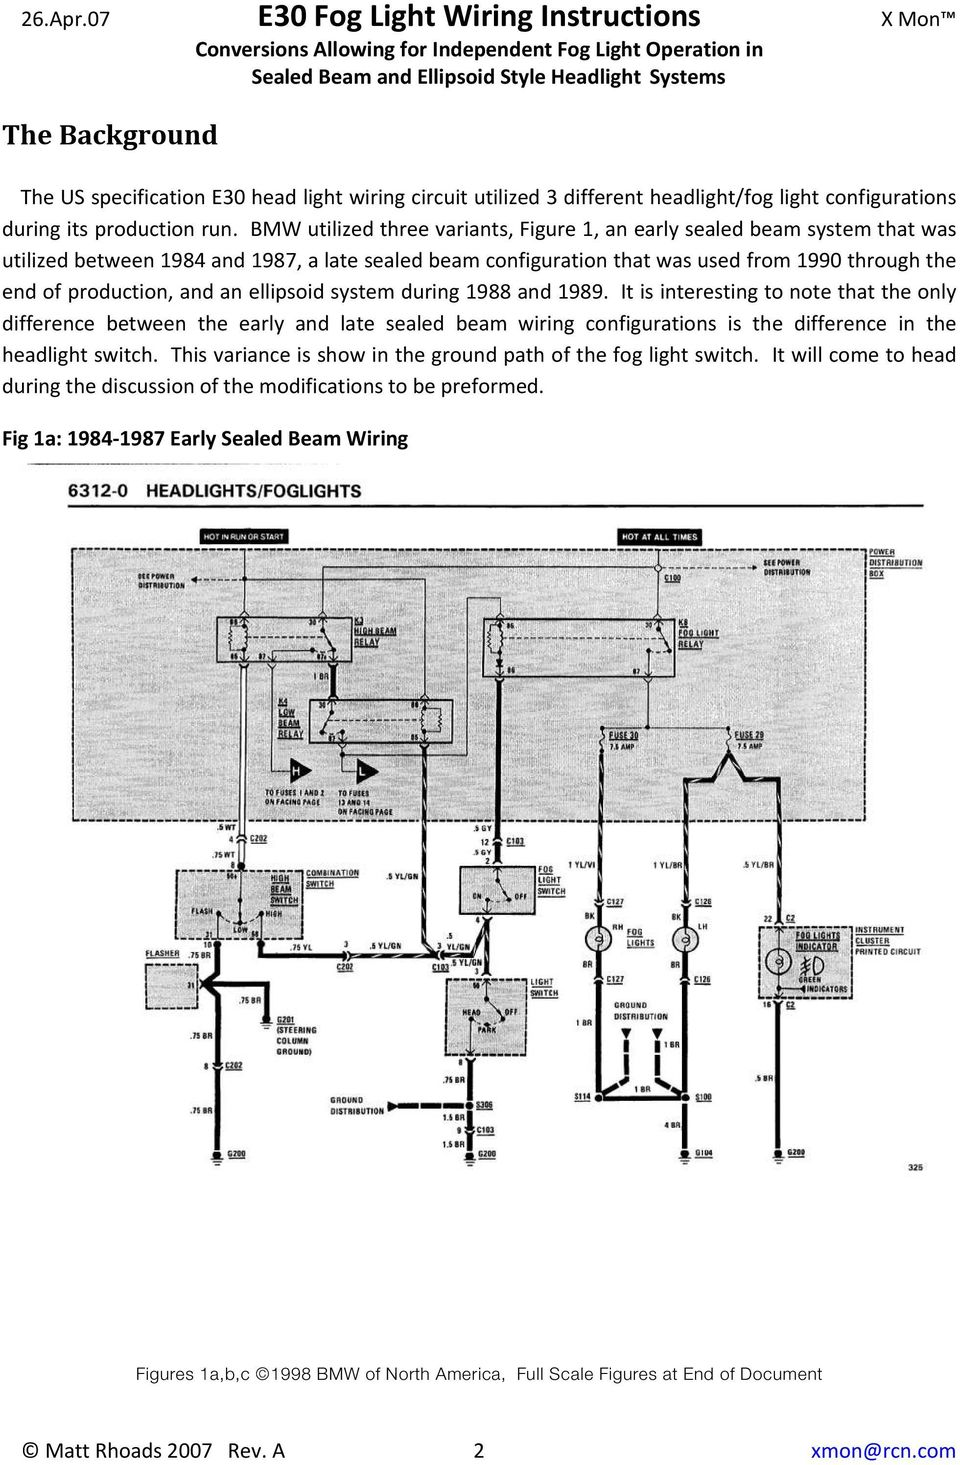 E30 Fog Light Wiring Instructions Conversions Allowing For 2004 Tahoe Pnp Diagram An Ellipsoid System During 1988 And 1989 It Is Interesting To Note That The Only